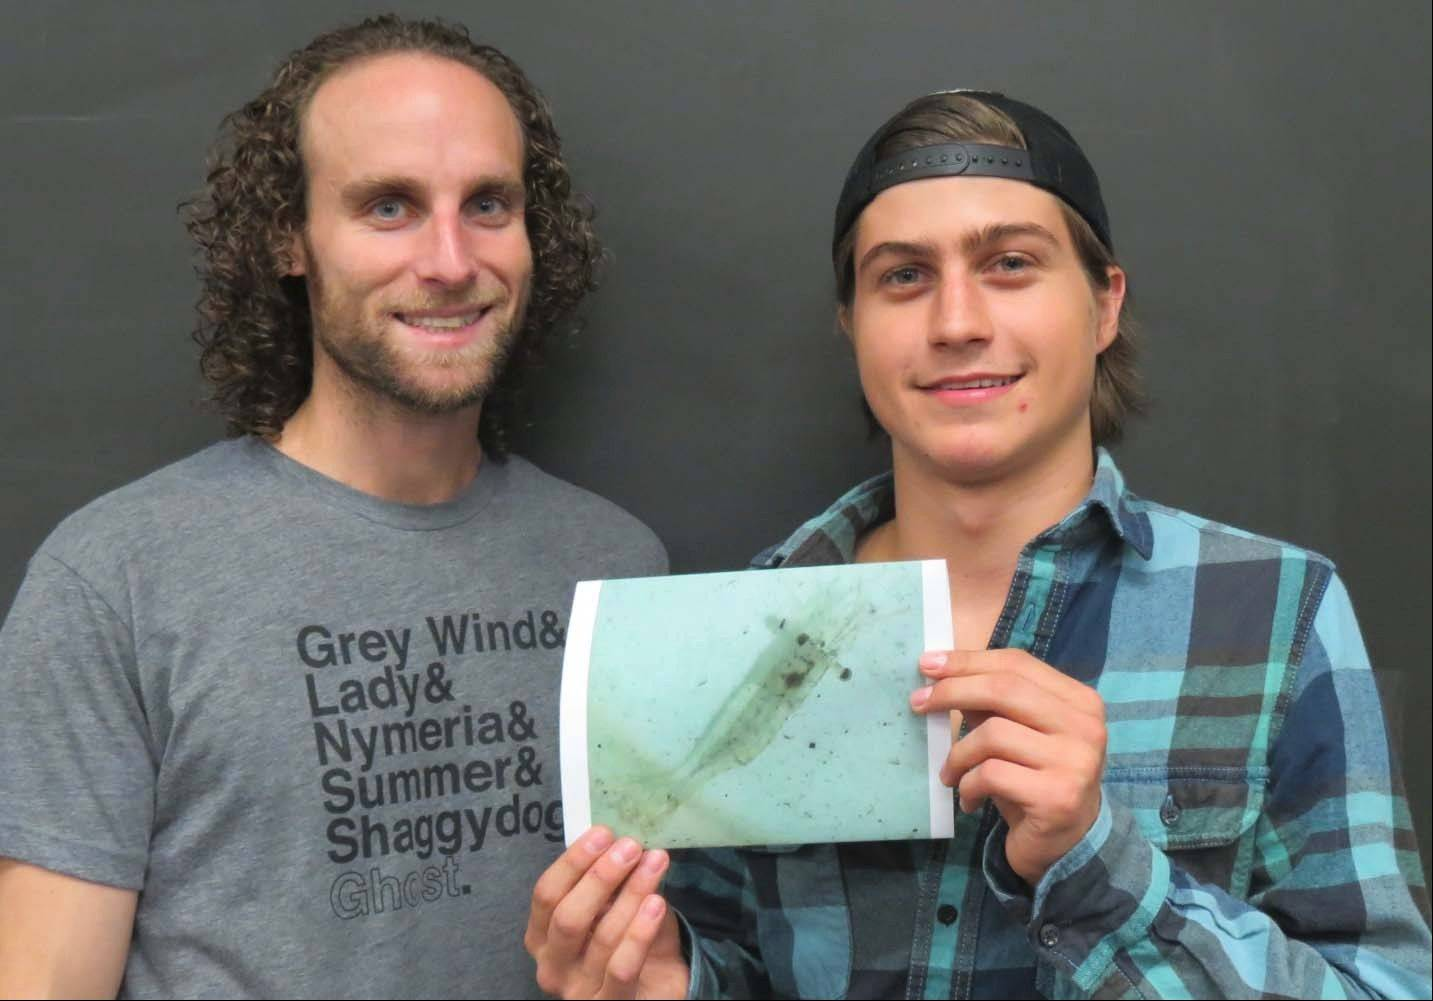 Oakton student Michael Buffo-Genyk (right), and Paul Gulezian, assistant professor of biology, display a picture of a rare find -- a Mississippi grass shrimp. Buffo-Genyk recently found the shrimp in the Des Plaines River as part of his Introduction to Environmental Science class.